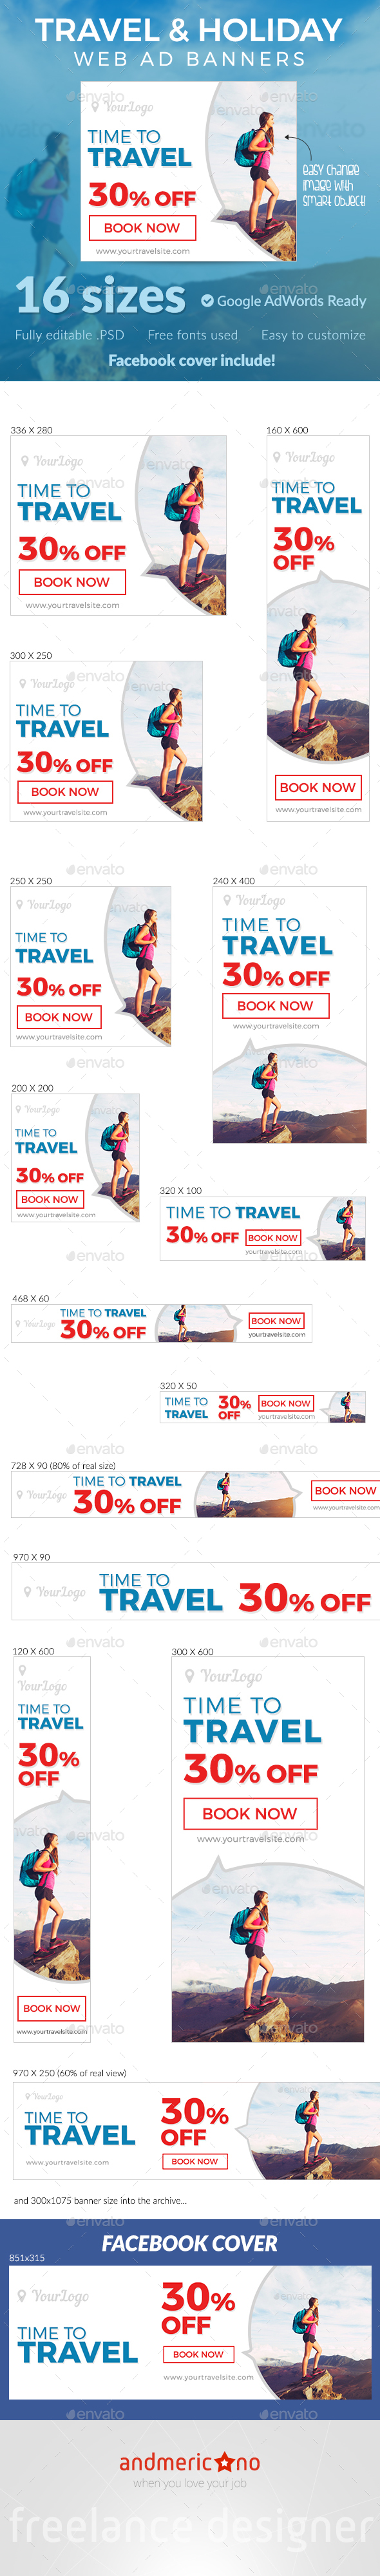 Travel & Holidays Ad Banners - Banners & Ads Web Elements